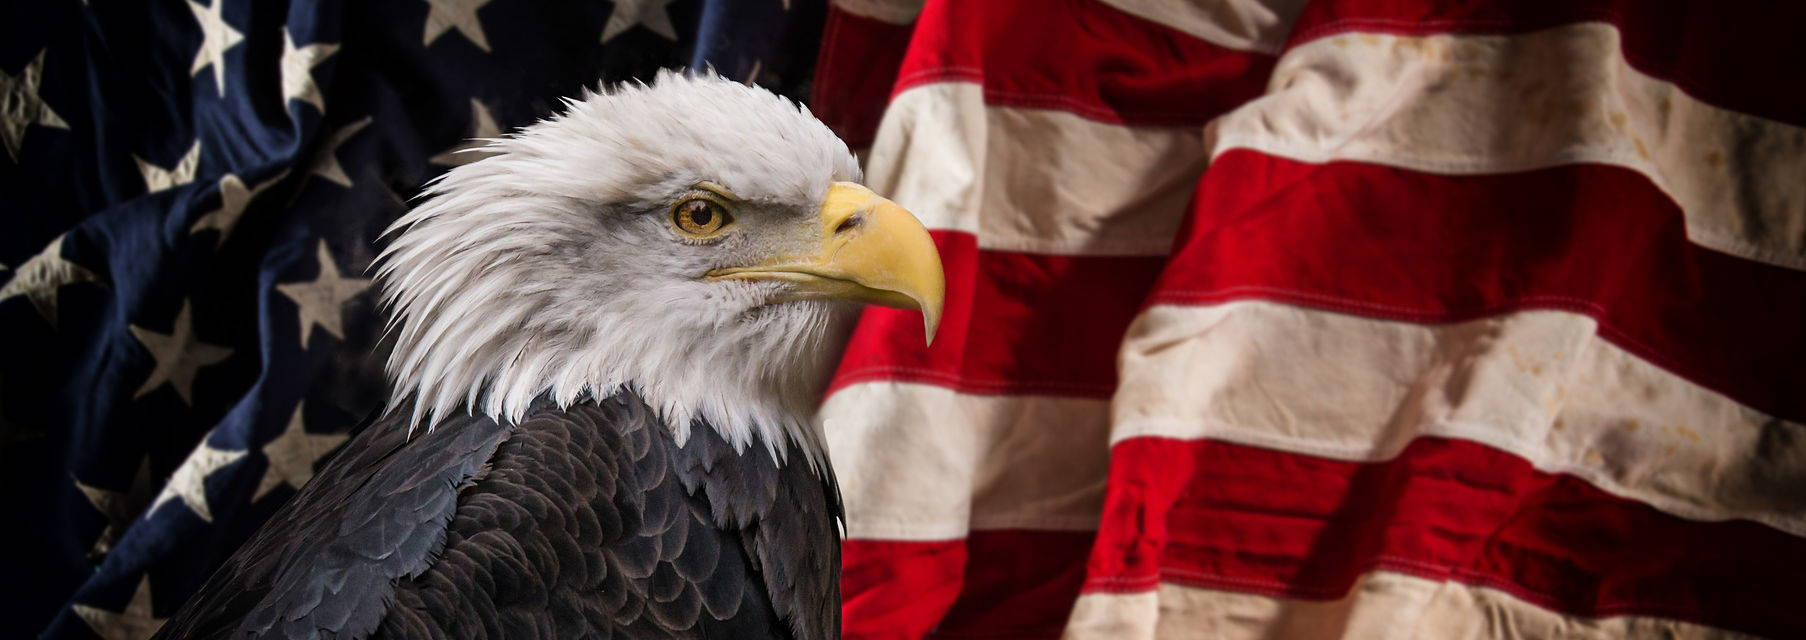 Ridiculously Patriotic Trivia About Eagles